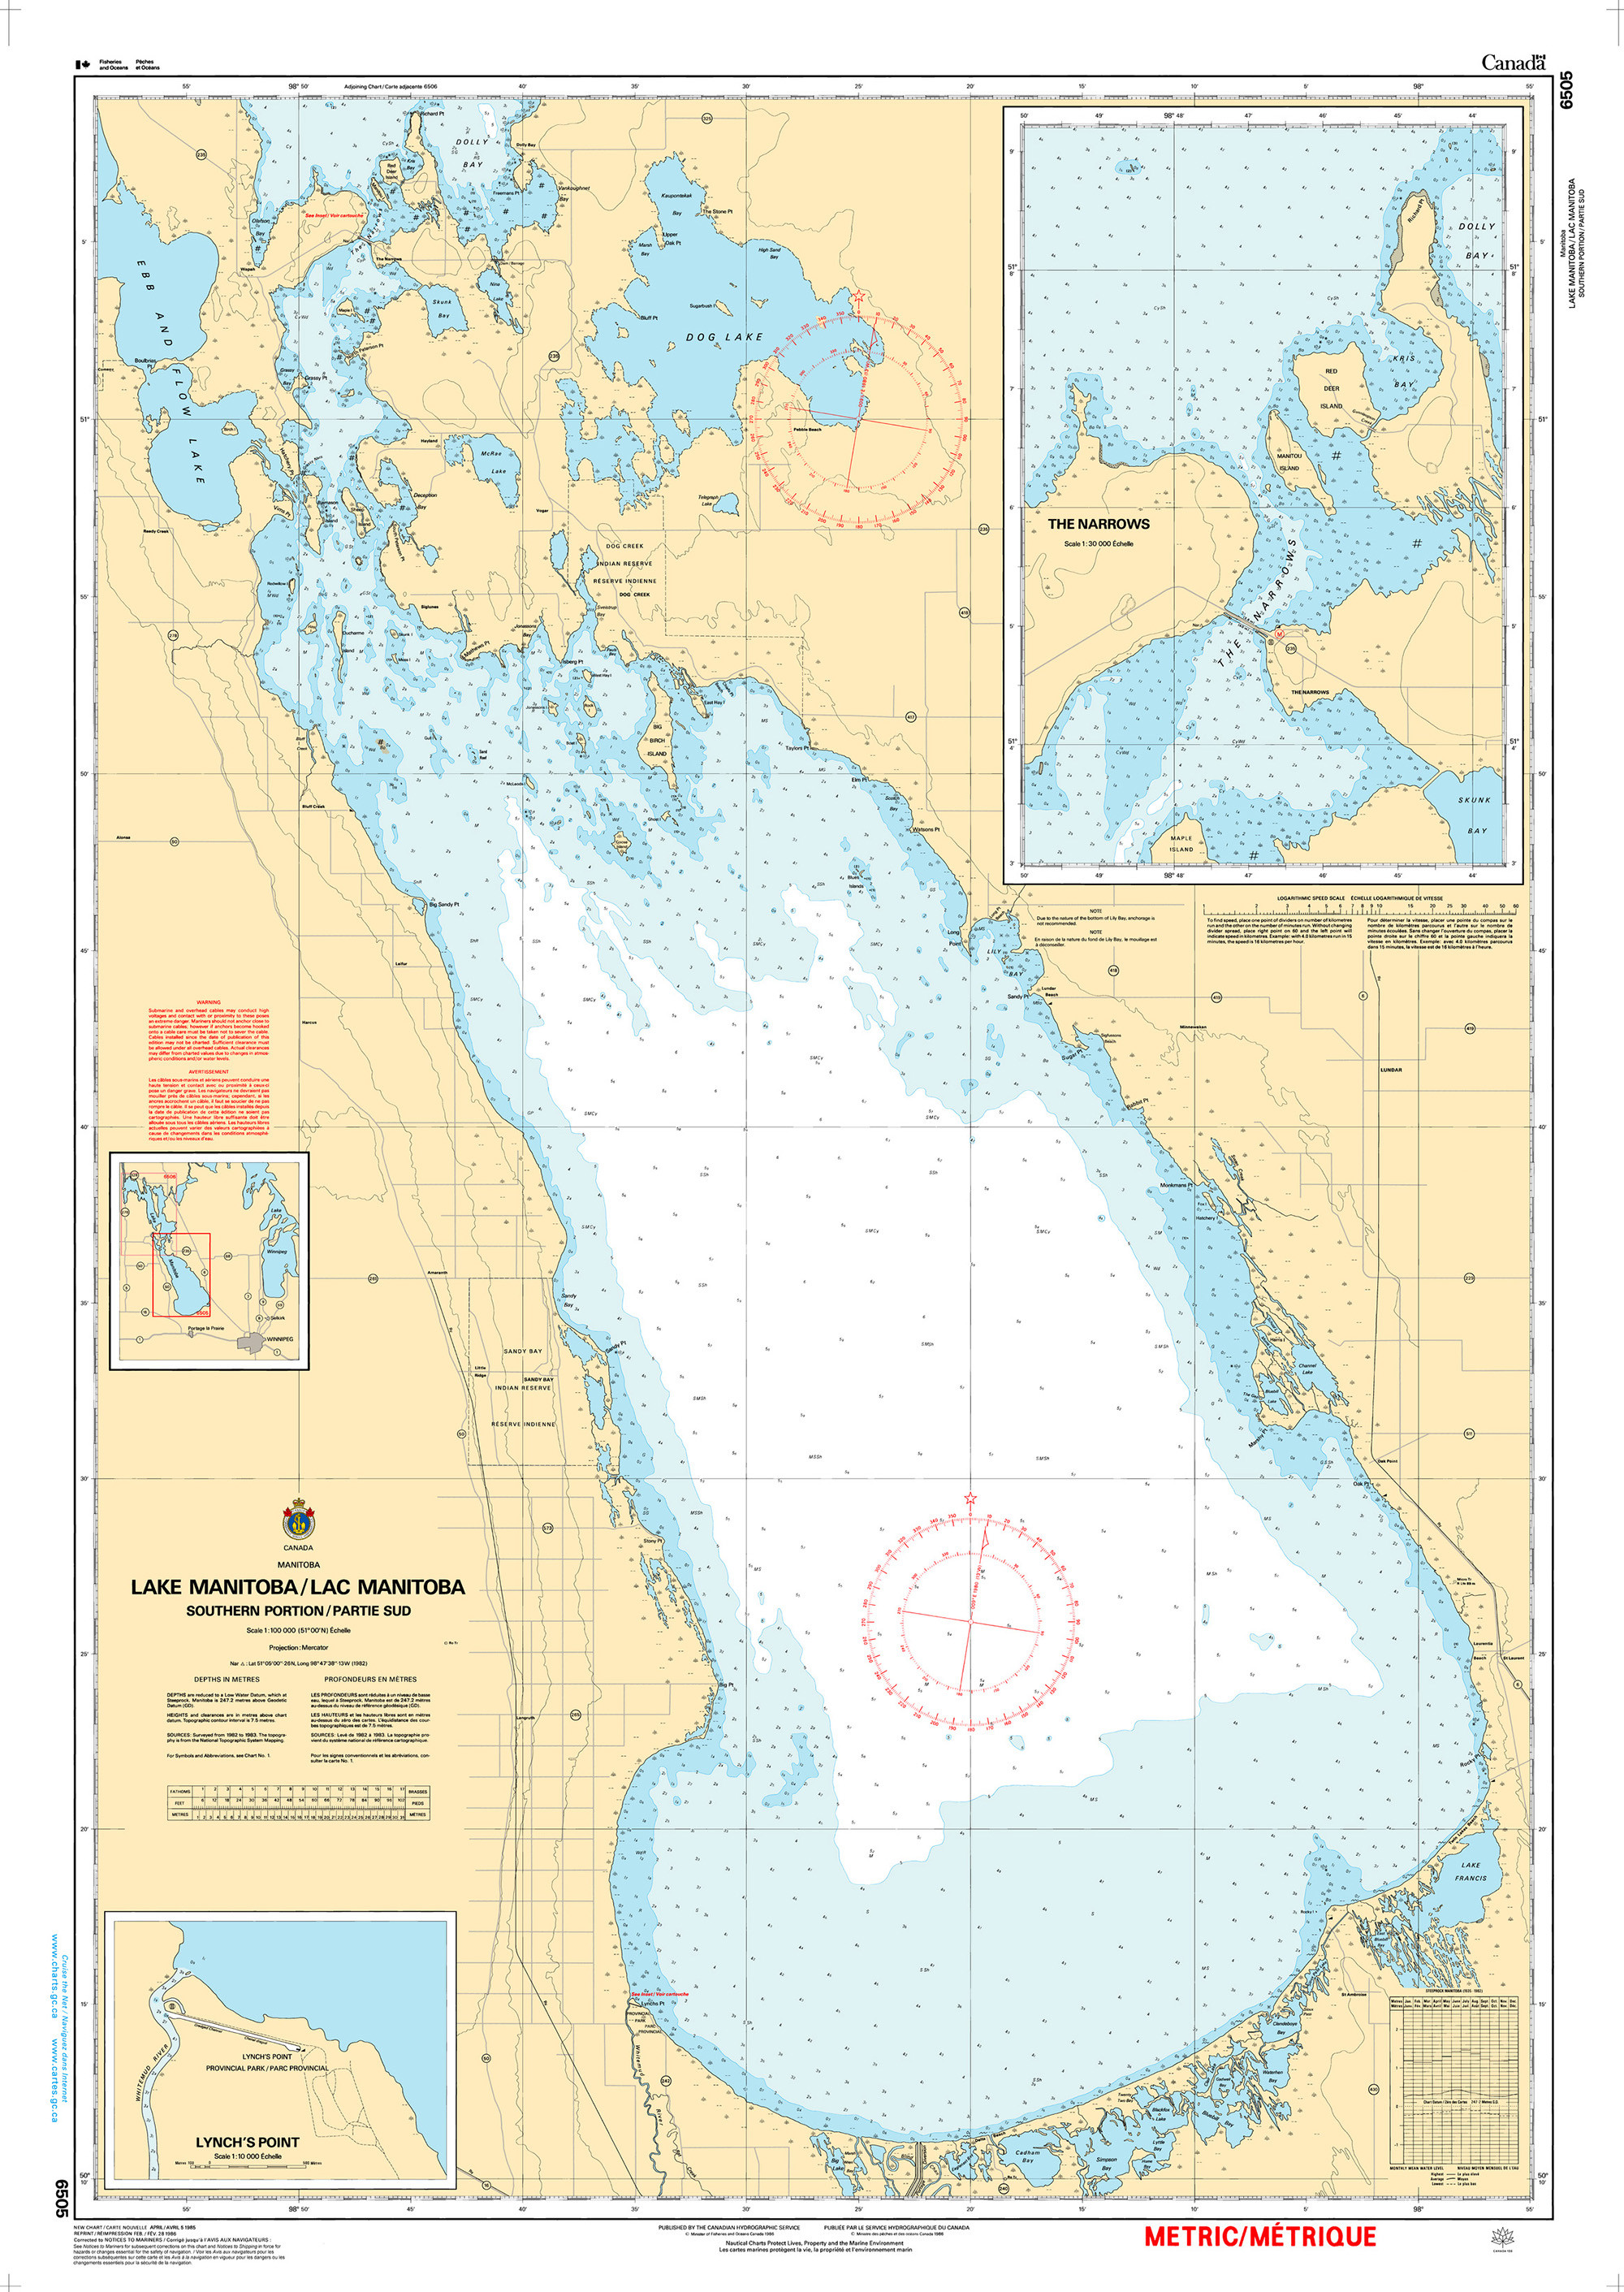 CHS Nautical Chart - CHS6505 Lake Manitoba / Lac Manitoba (Southern Portion / Partie sud)